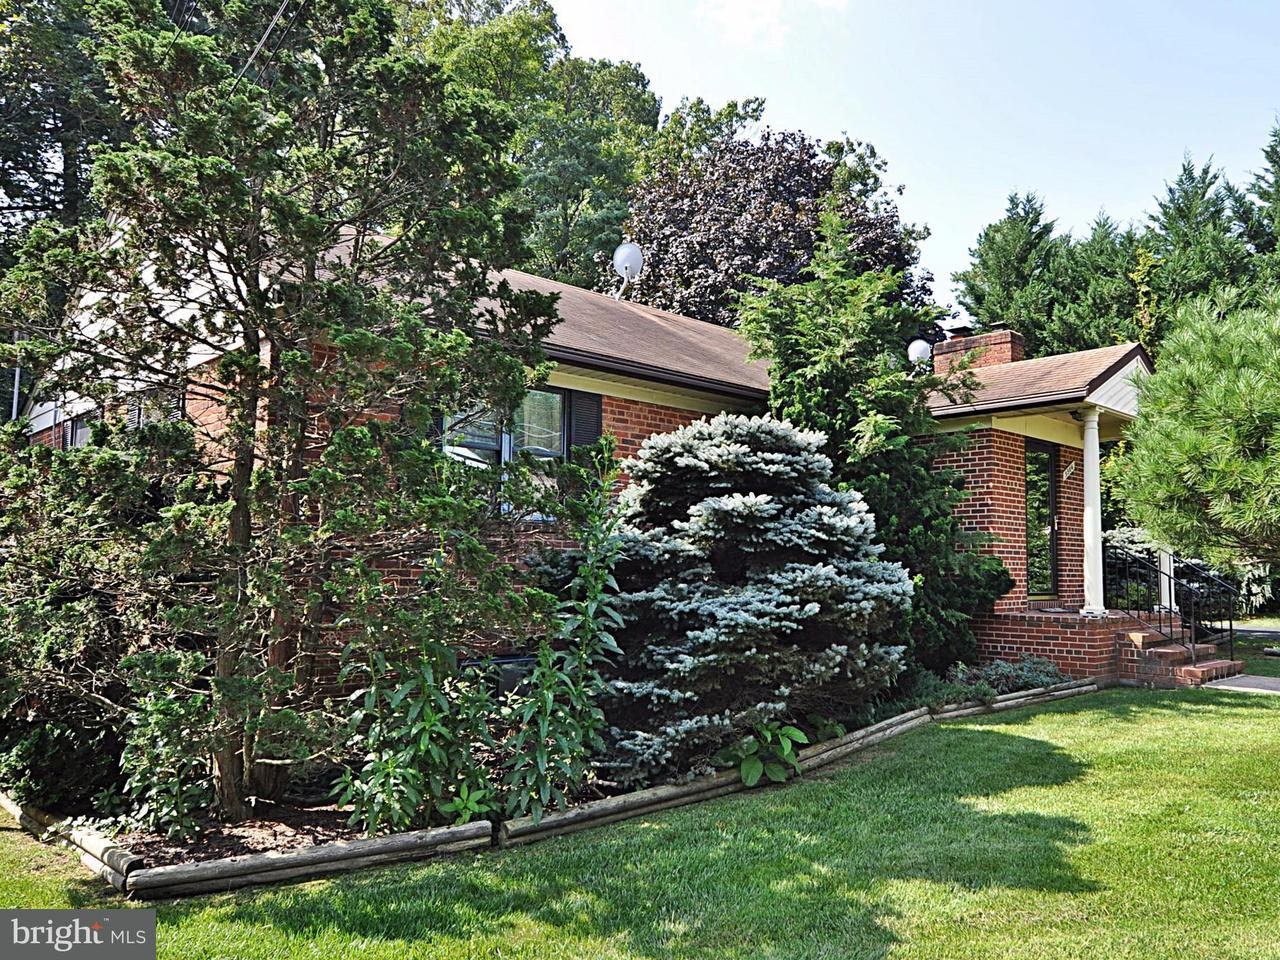 Single Family Home for Sale at 5506 WILLIAMSBURG BLVD 5506 WILLIAMSBURG BLVD Arlington, Virginia 22207 United States